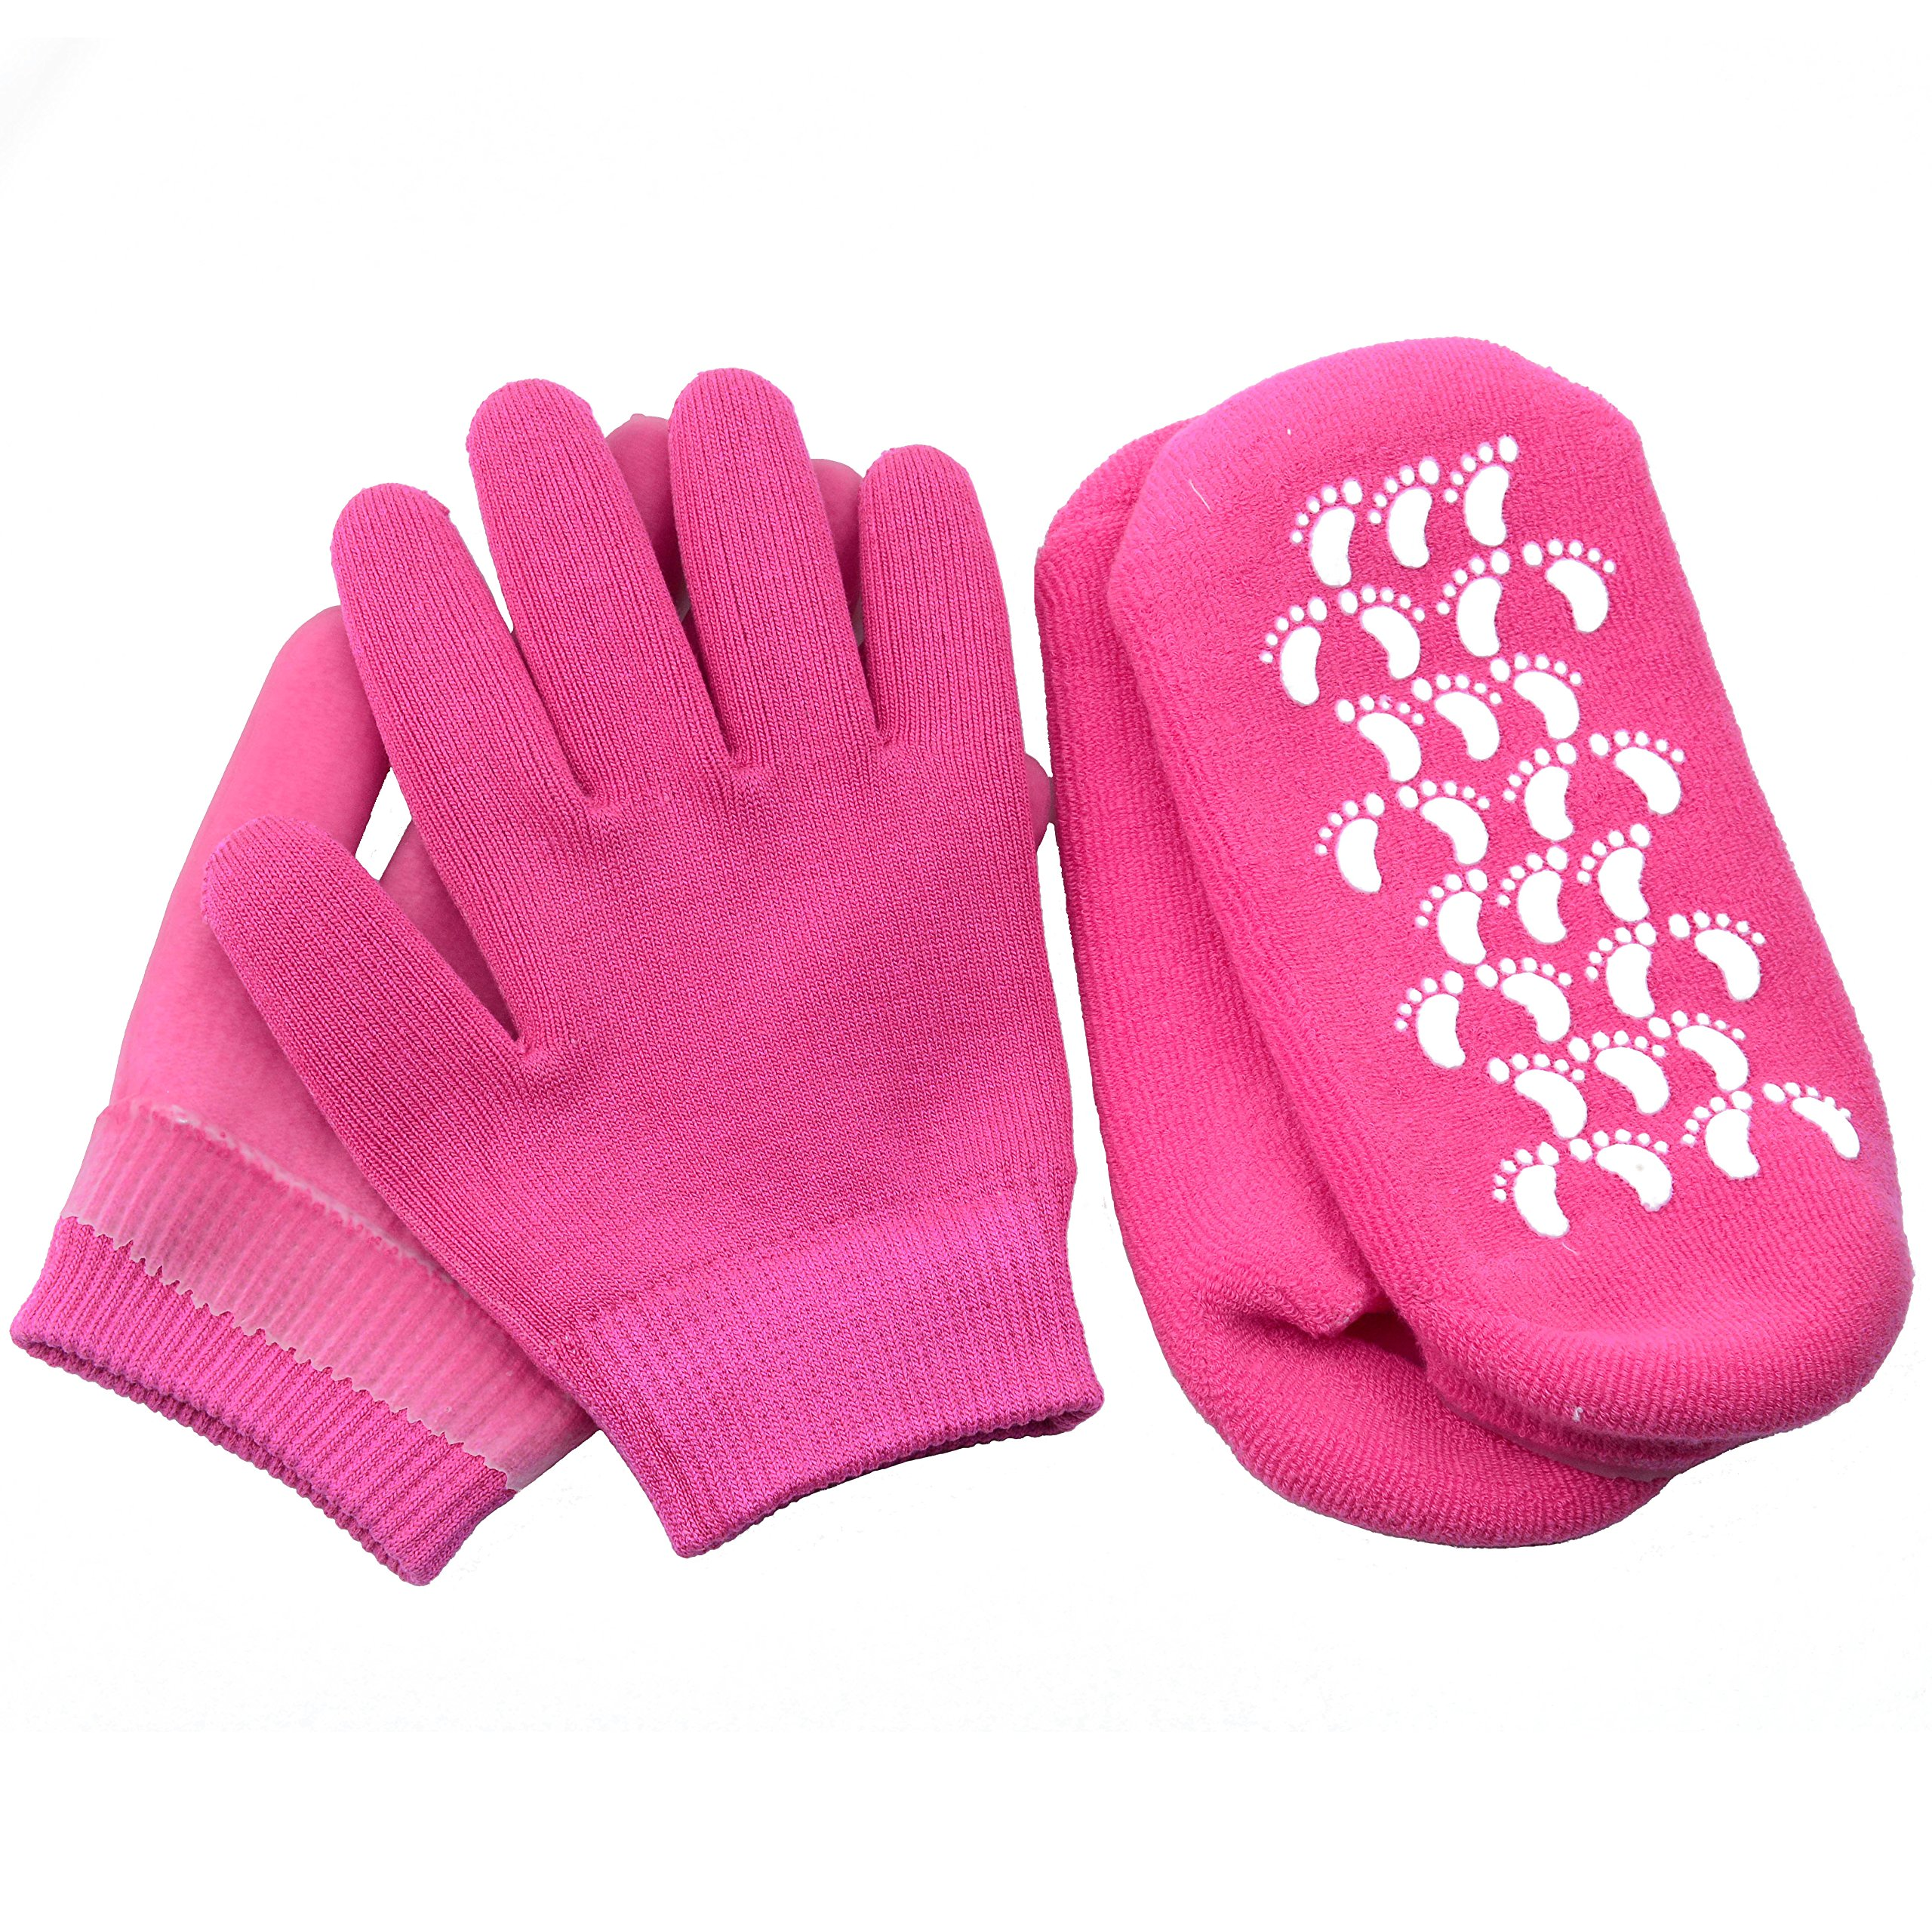 4pcs Premiun Hands & Feet Intense Moisture Replenishing Kit, Spa Socks Spa Gloves Gel Lined and Infused Essential Oils for Dried Cracked Skin (Rose Pink)